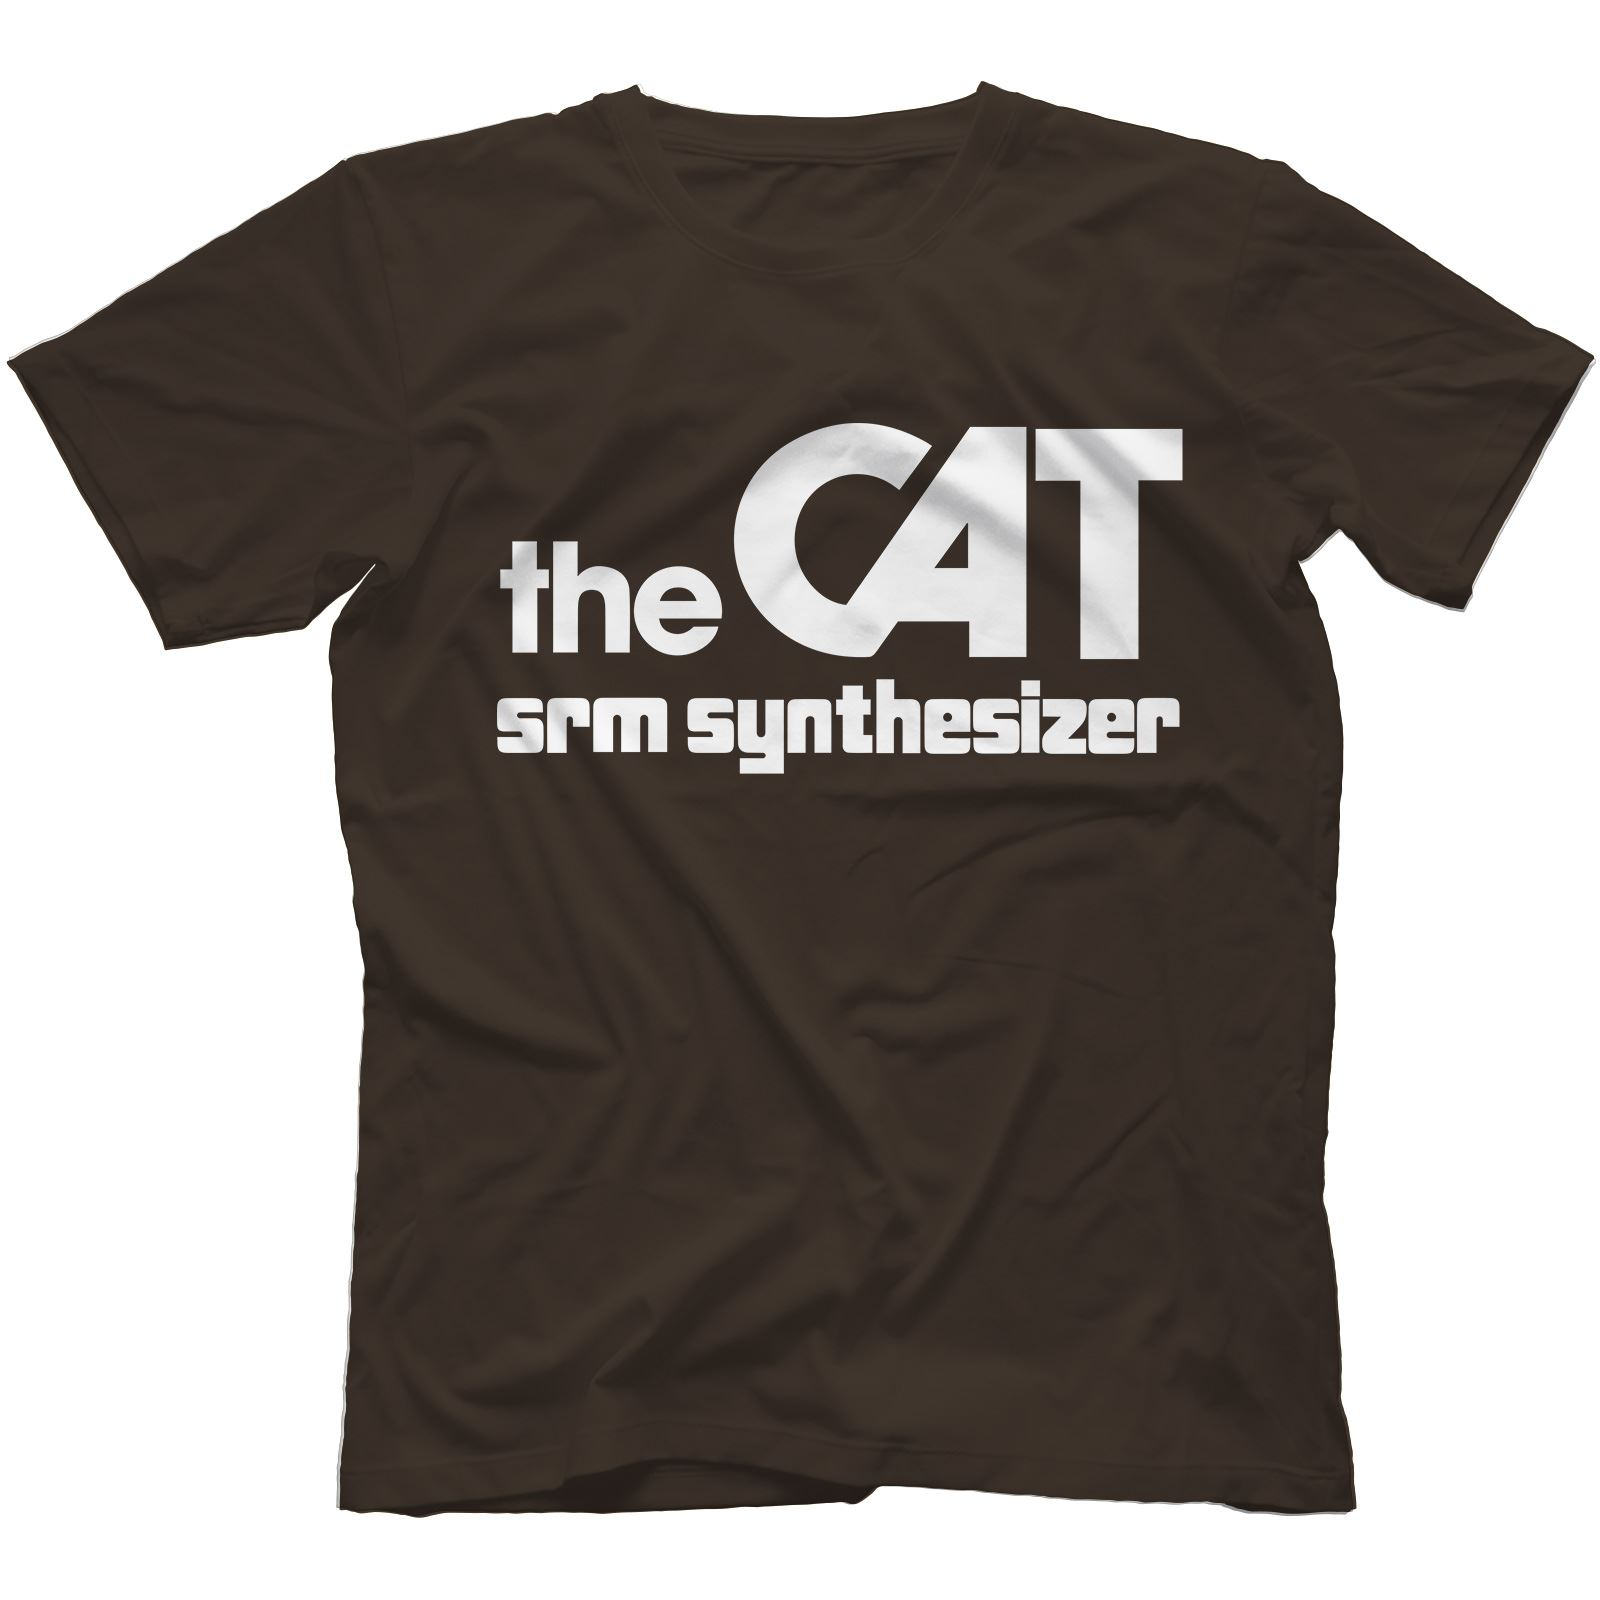 The-Cat-SRM-Synthesiser-T-Shirt-100-Cotton-Retro-Analog-Arp-Odyssey Indexbild 18